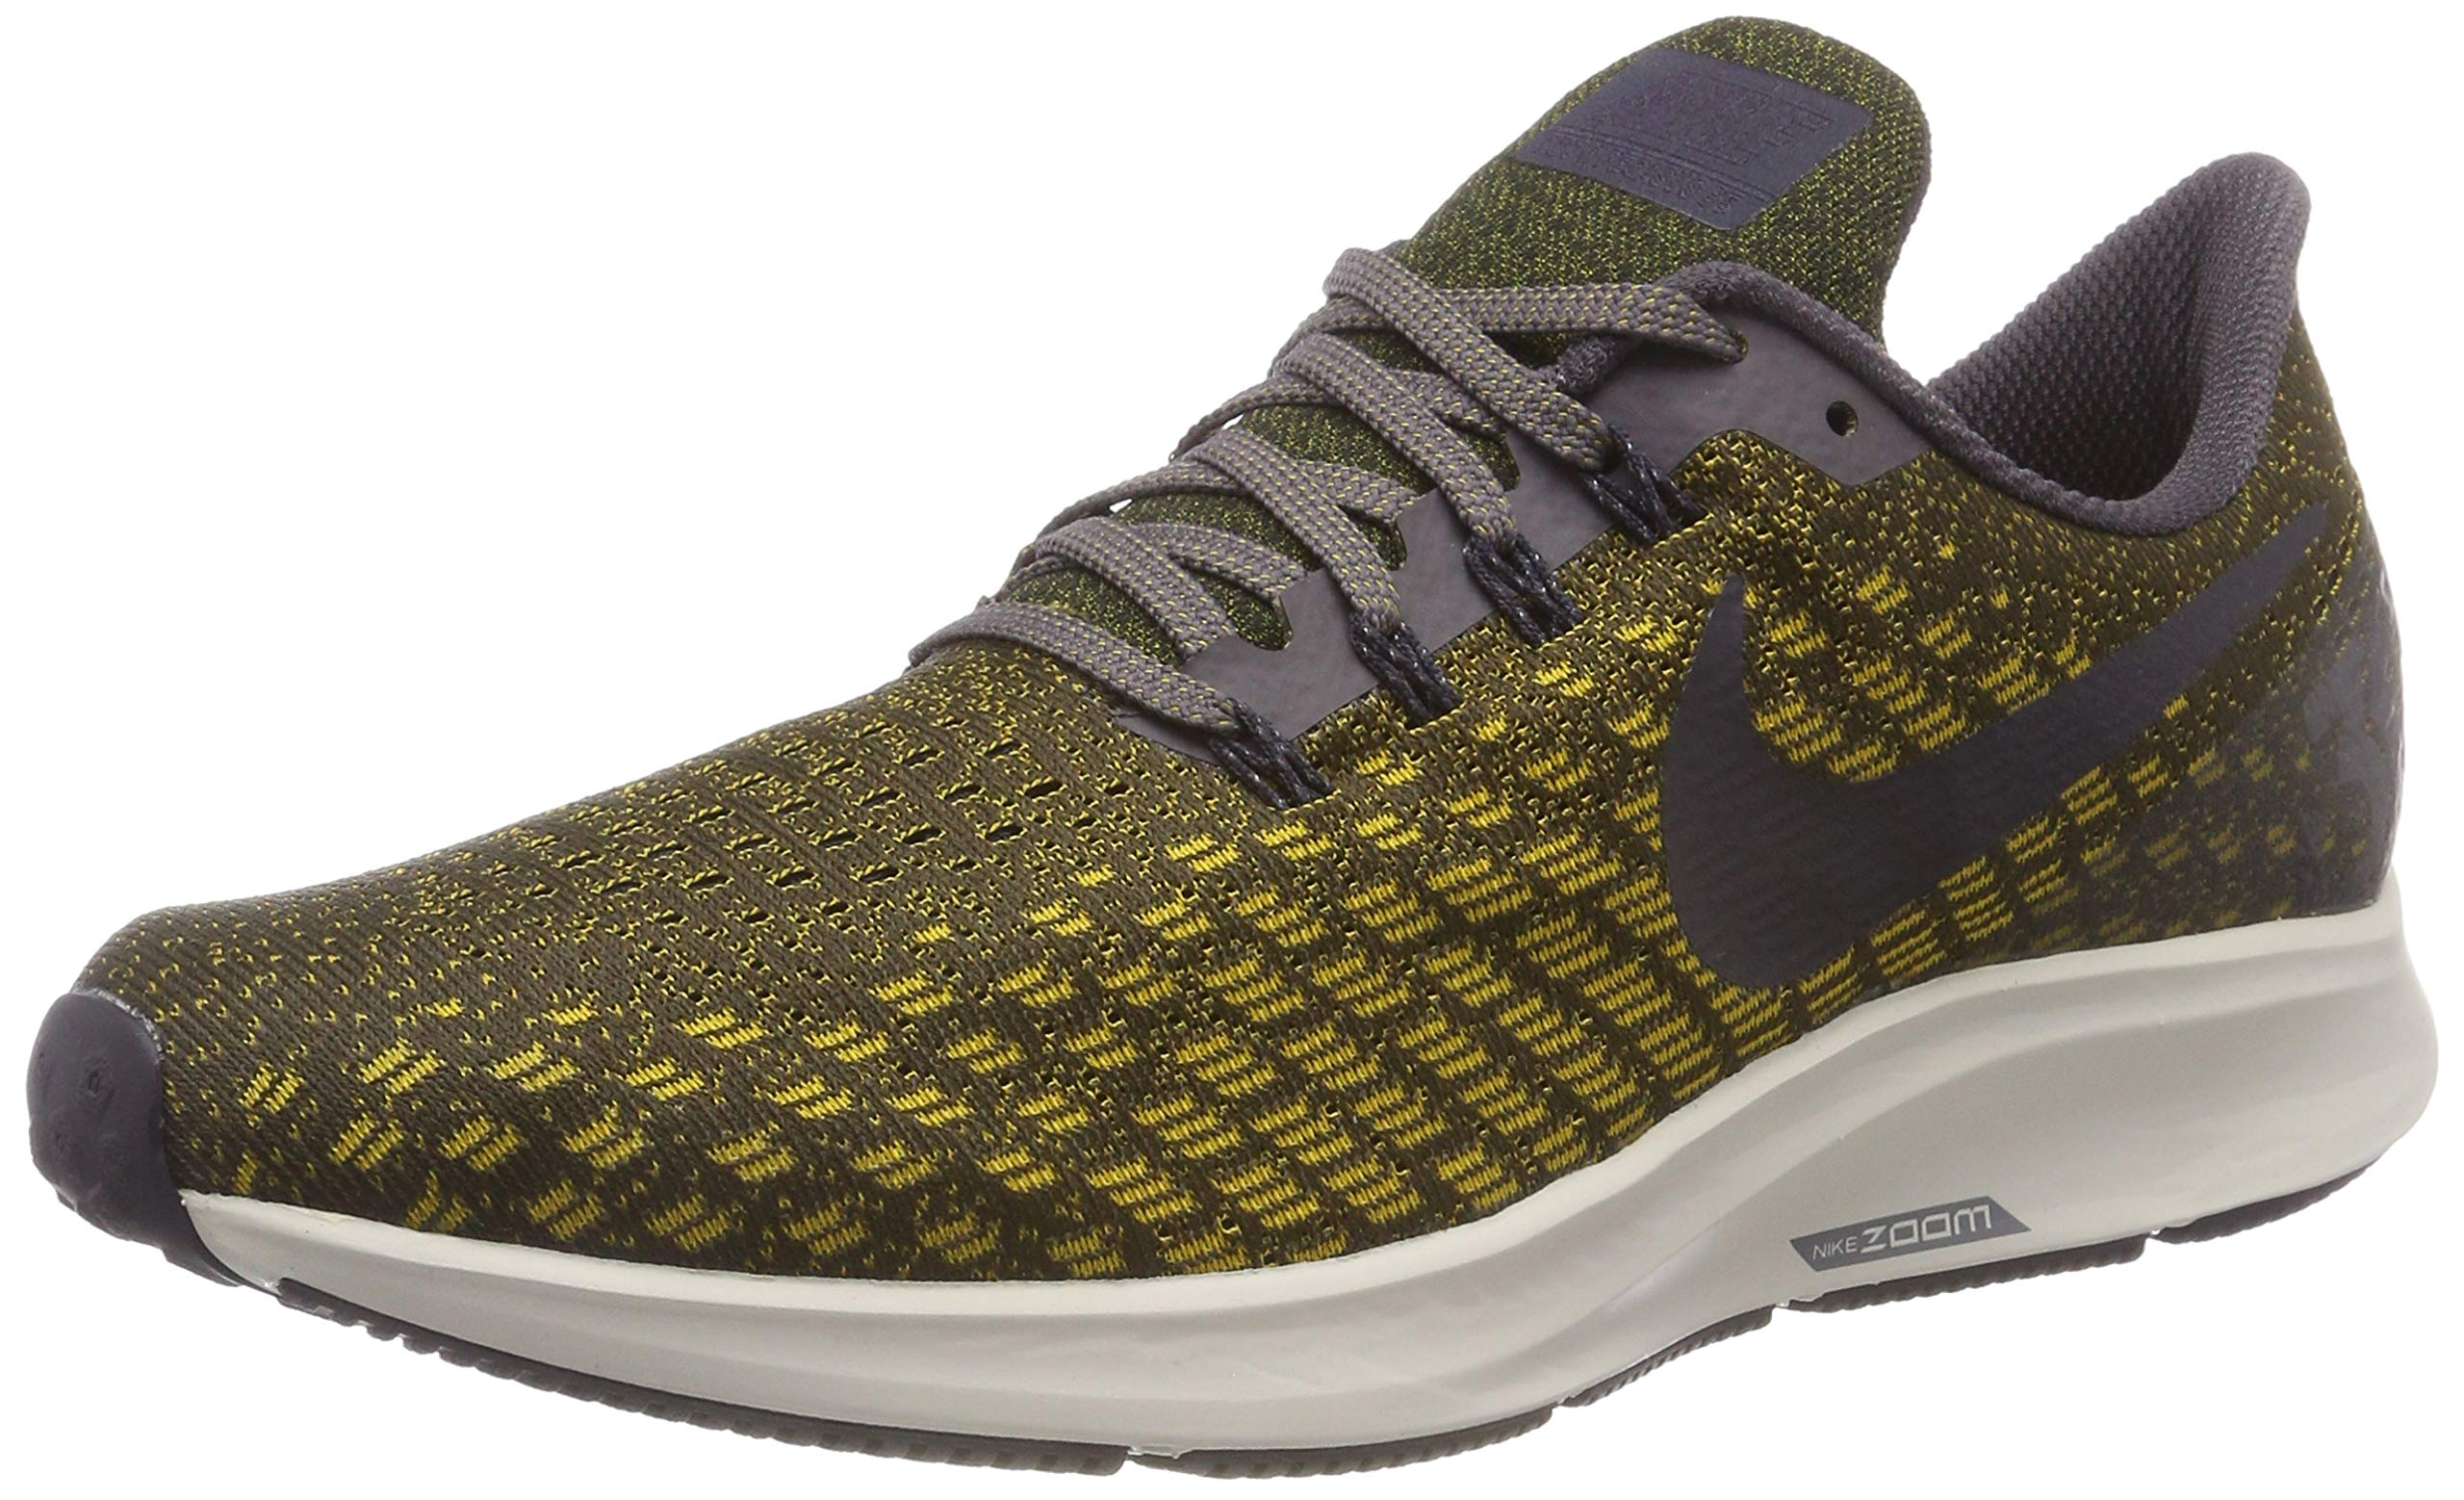 NIKE Men's Air Zoom Pegasus 35 Running Shoes (6, Olive) by Nike (Image #1)